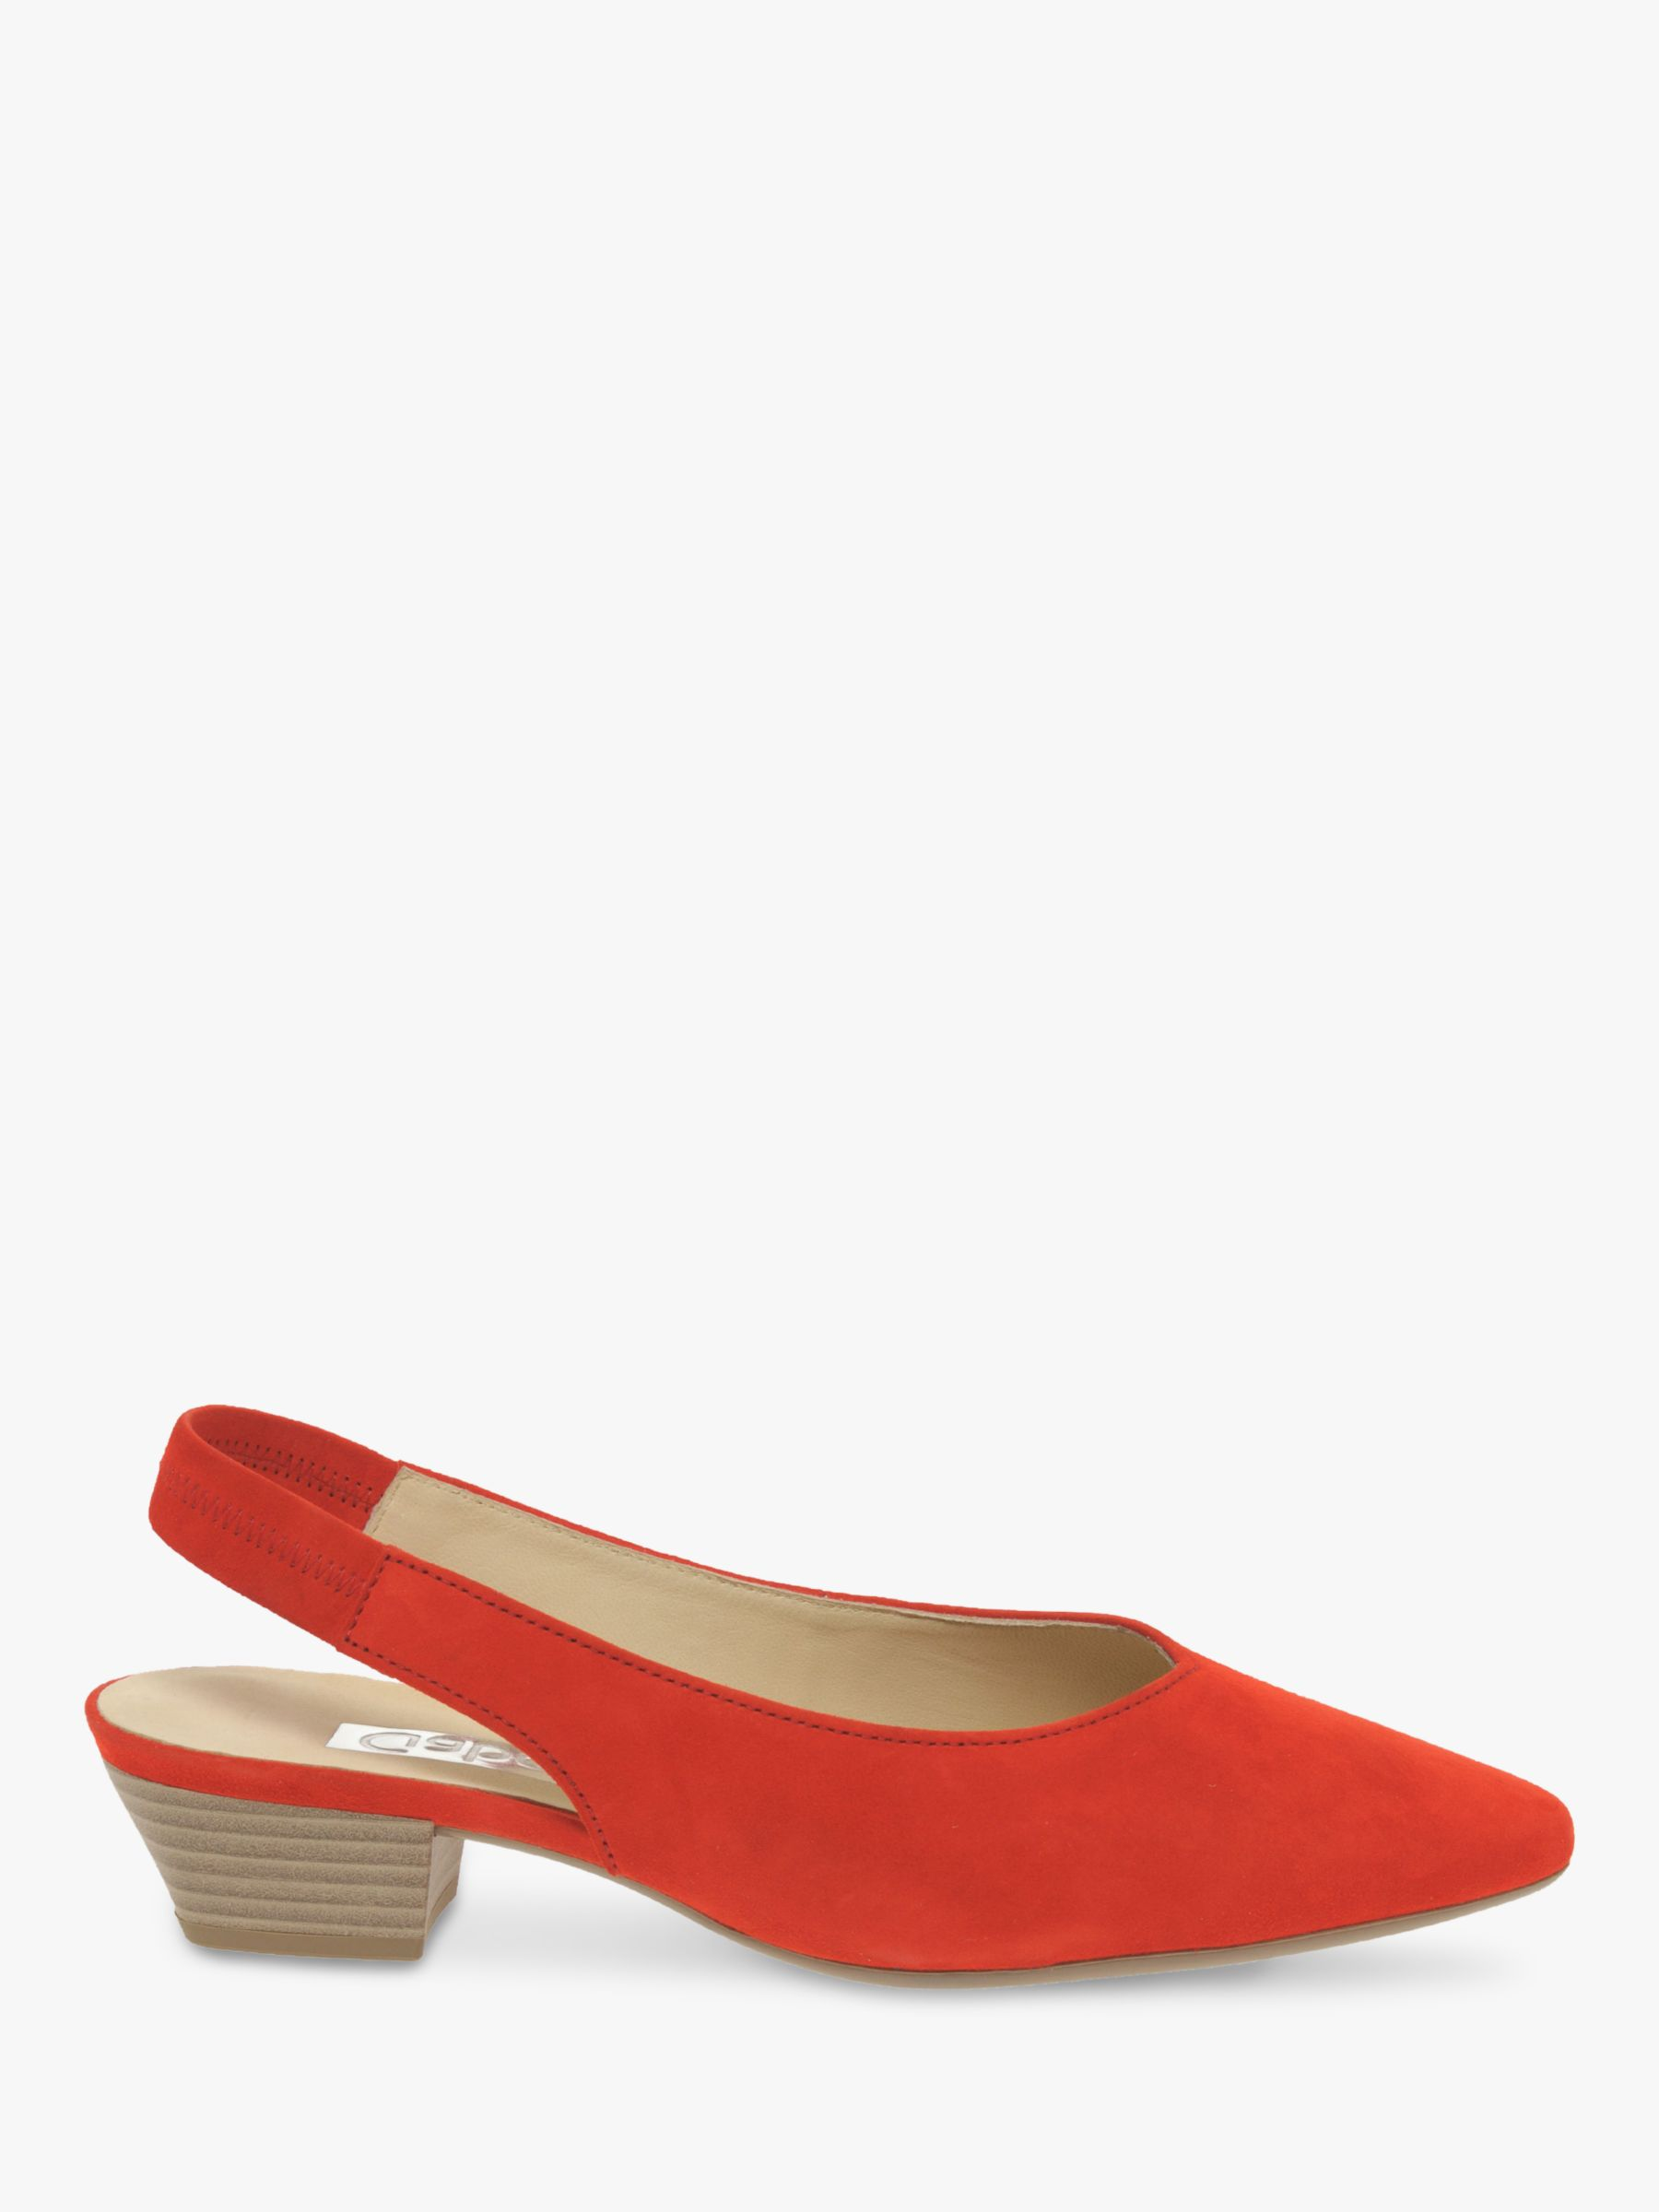 Gabor Gabor Heathcliffe Suede Sling Back Court Shoes, Coral Red